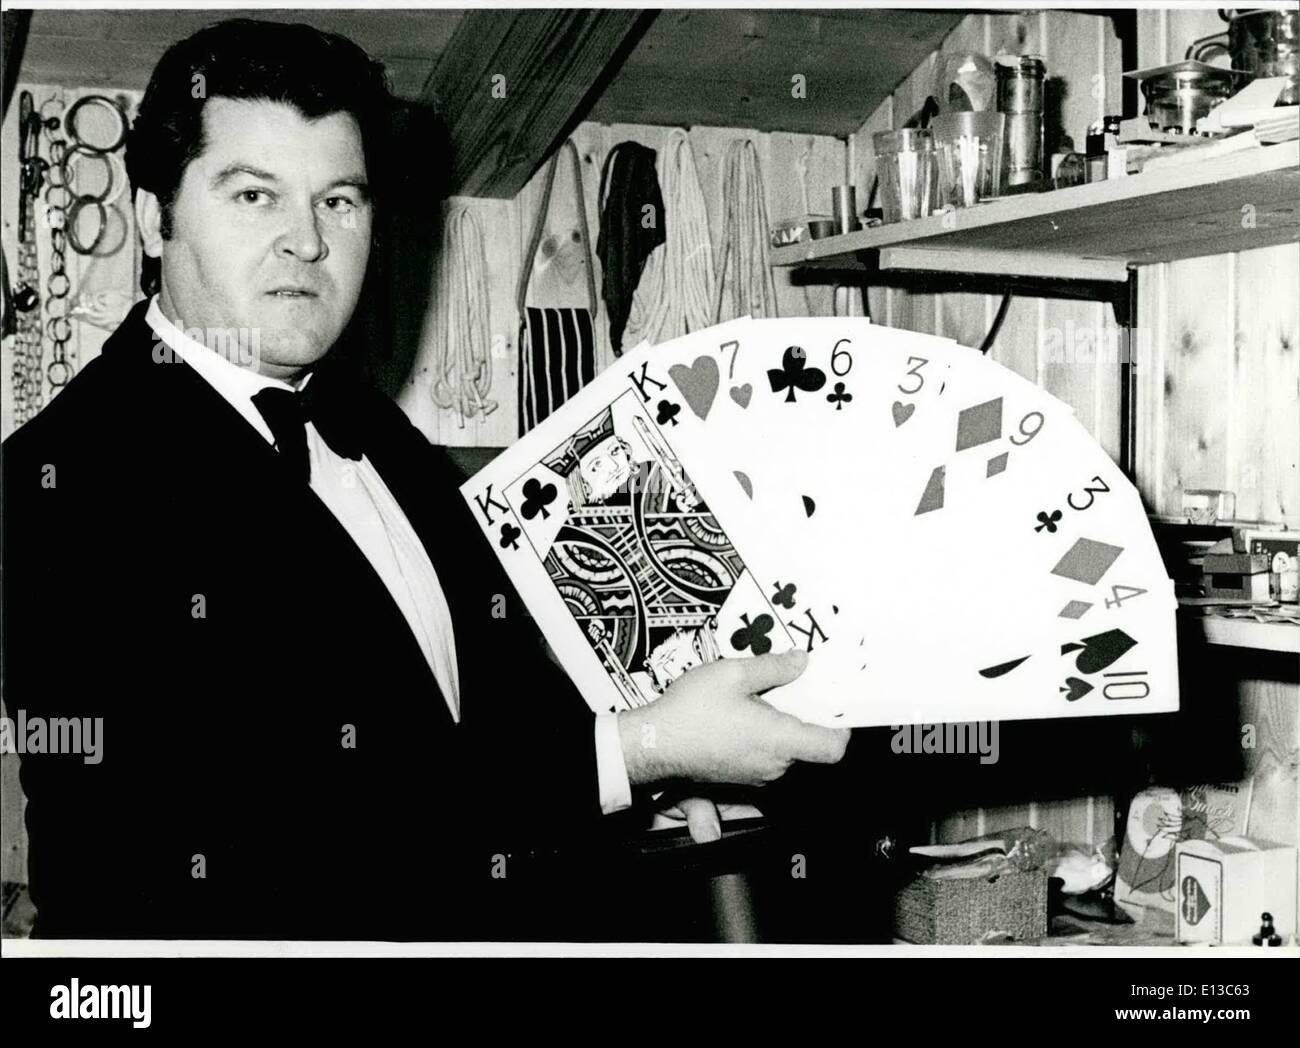 Feb. 29, 2012 - March 2nd And 3rd 1981: Attempt To Get The World Record In Permanent Magic: ''That's really magic''... what is happening on the carnival days (March 2nd and 3rd.1981) in Rosenheim/West Germany: namely an attempt to get the world record in permanent magic. For 32 hours (after each hour he makes a pause of five minutes) Matthias Weissl will take rabbits out of a silk hat and conjure play cards out of his hand - Stock Image